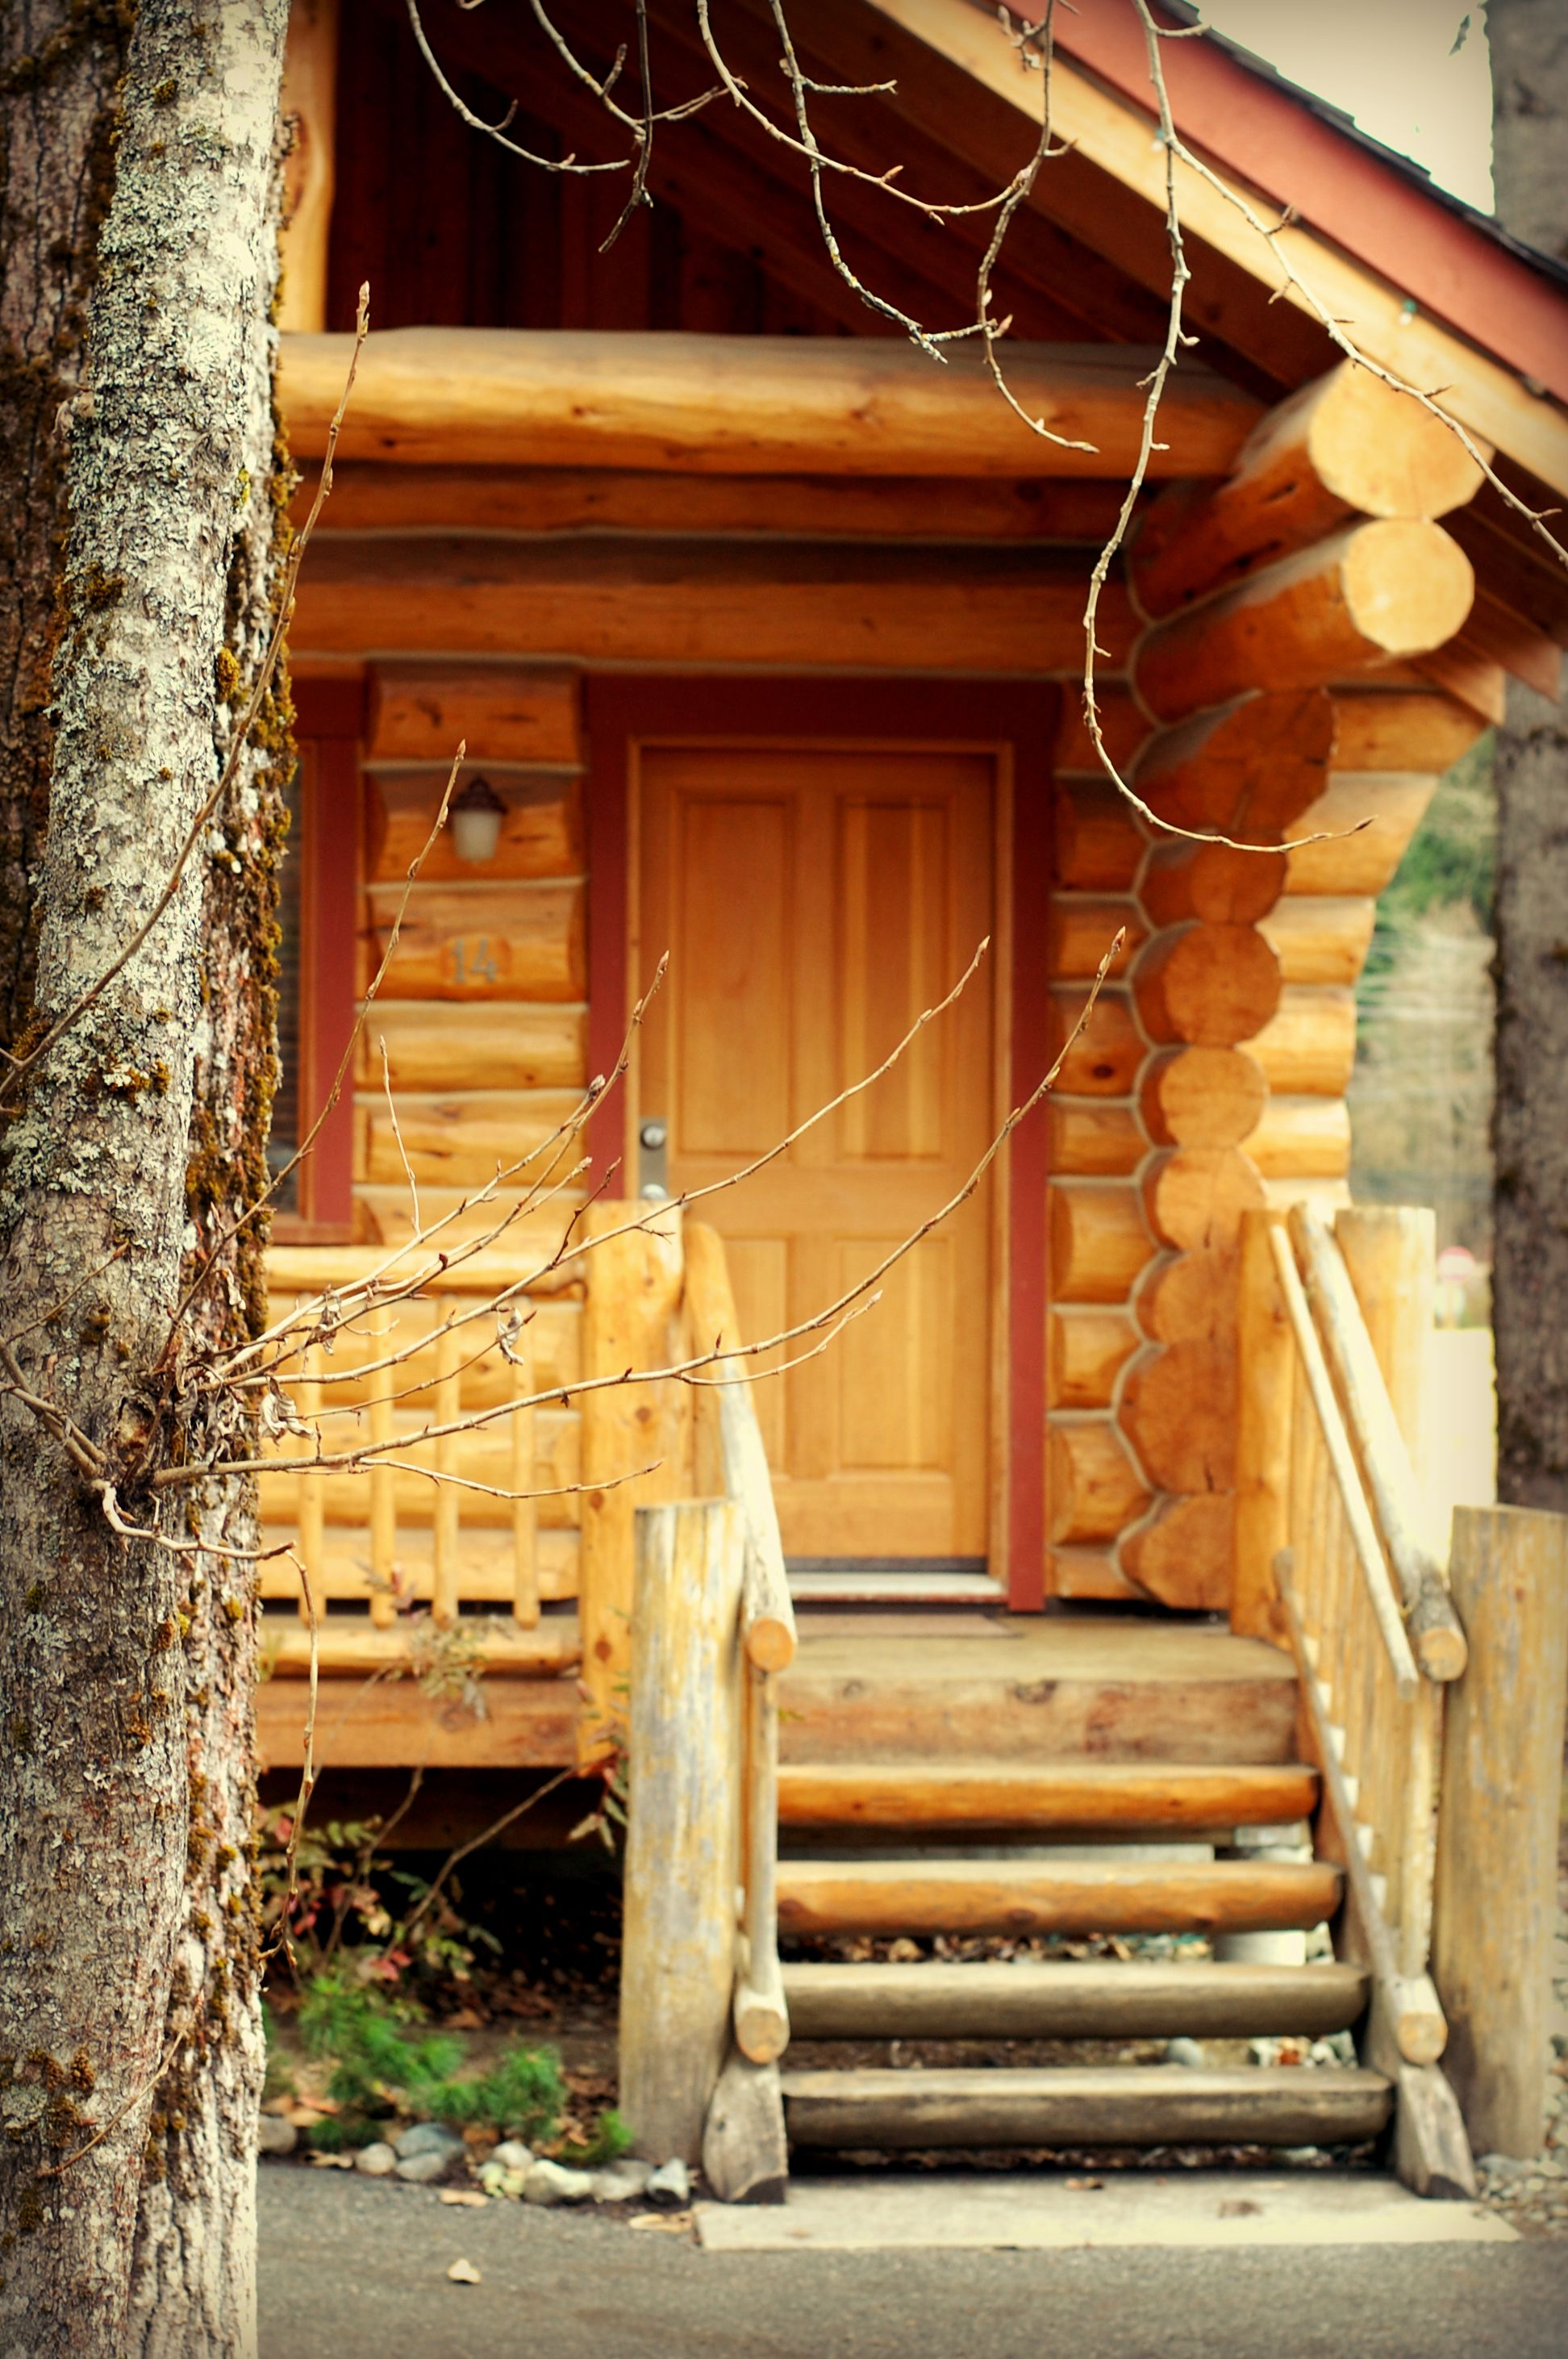 looking other you tubs the to place with anniversary georgia perfect fireplaces of your romantic cabins hot an are maybe honeymoon propose asheville or for img in celebrate even significant